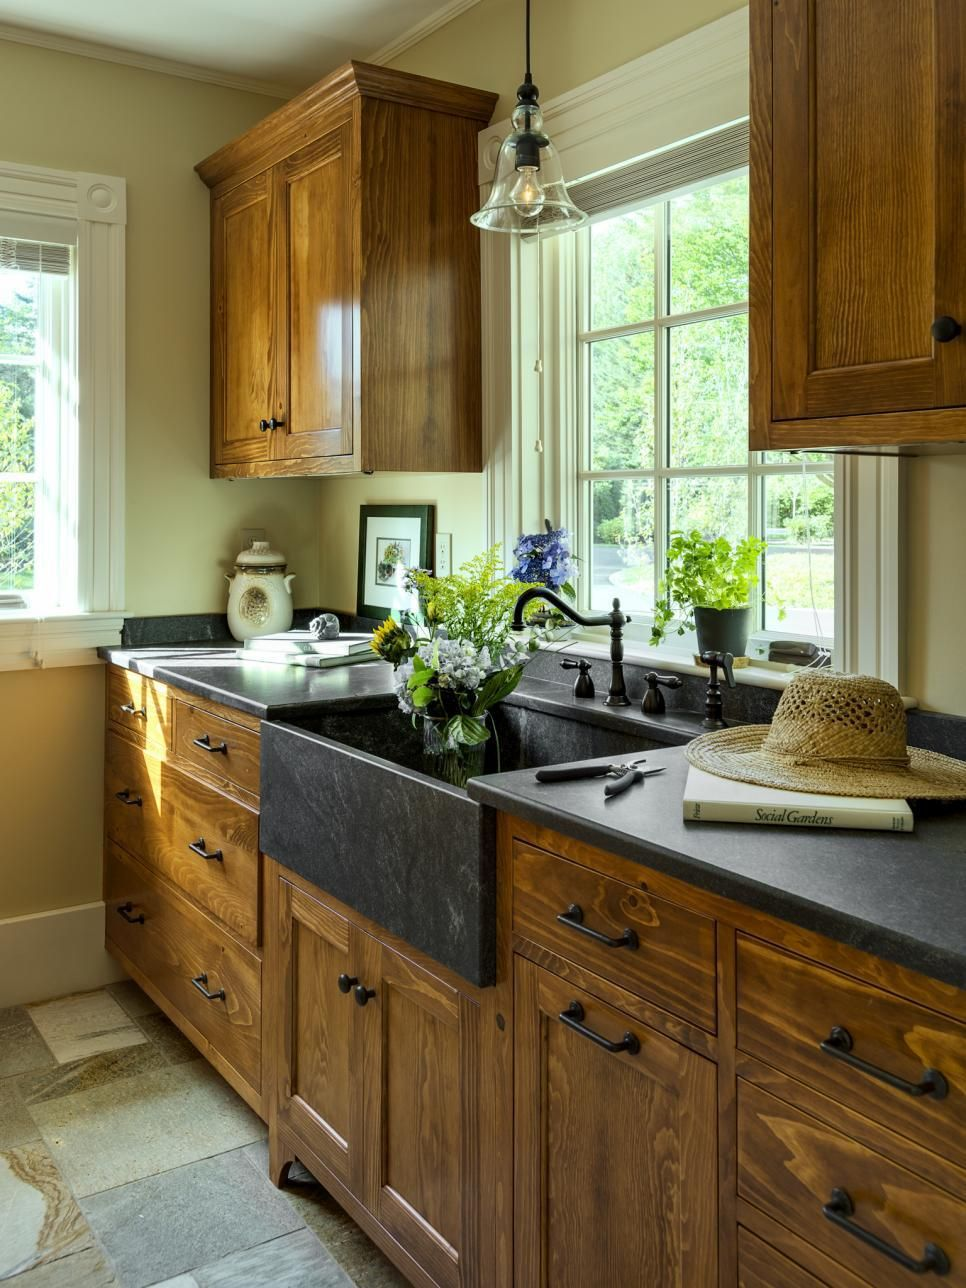 Modern Kitchens With Unpainted Cabinets Rustic Kitchen Cabinets